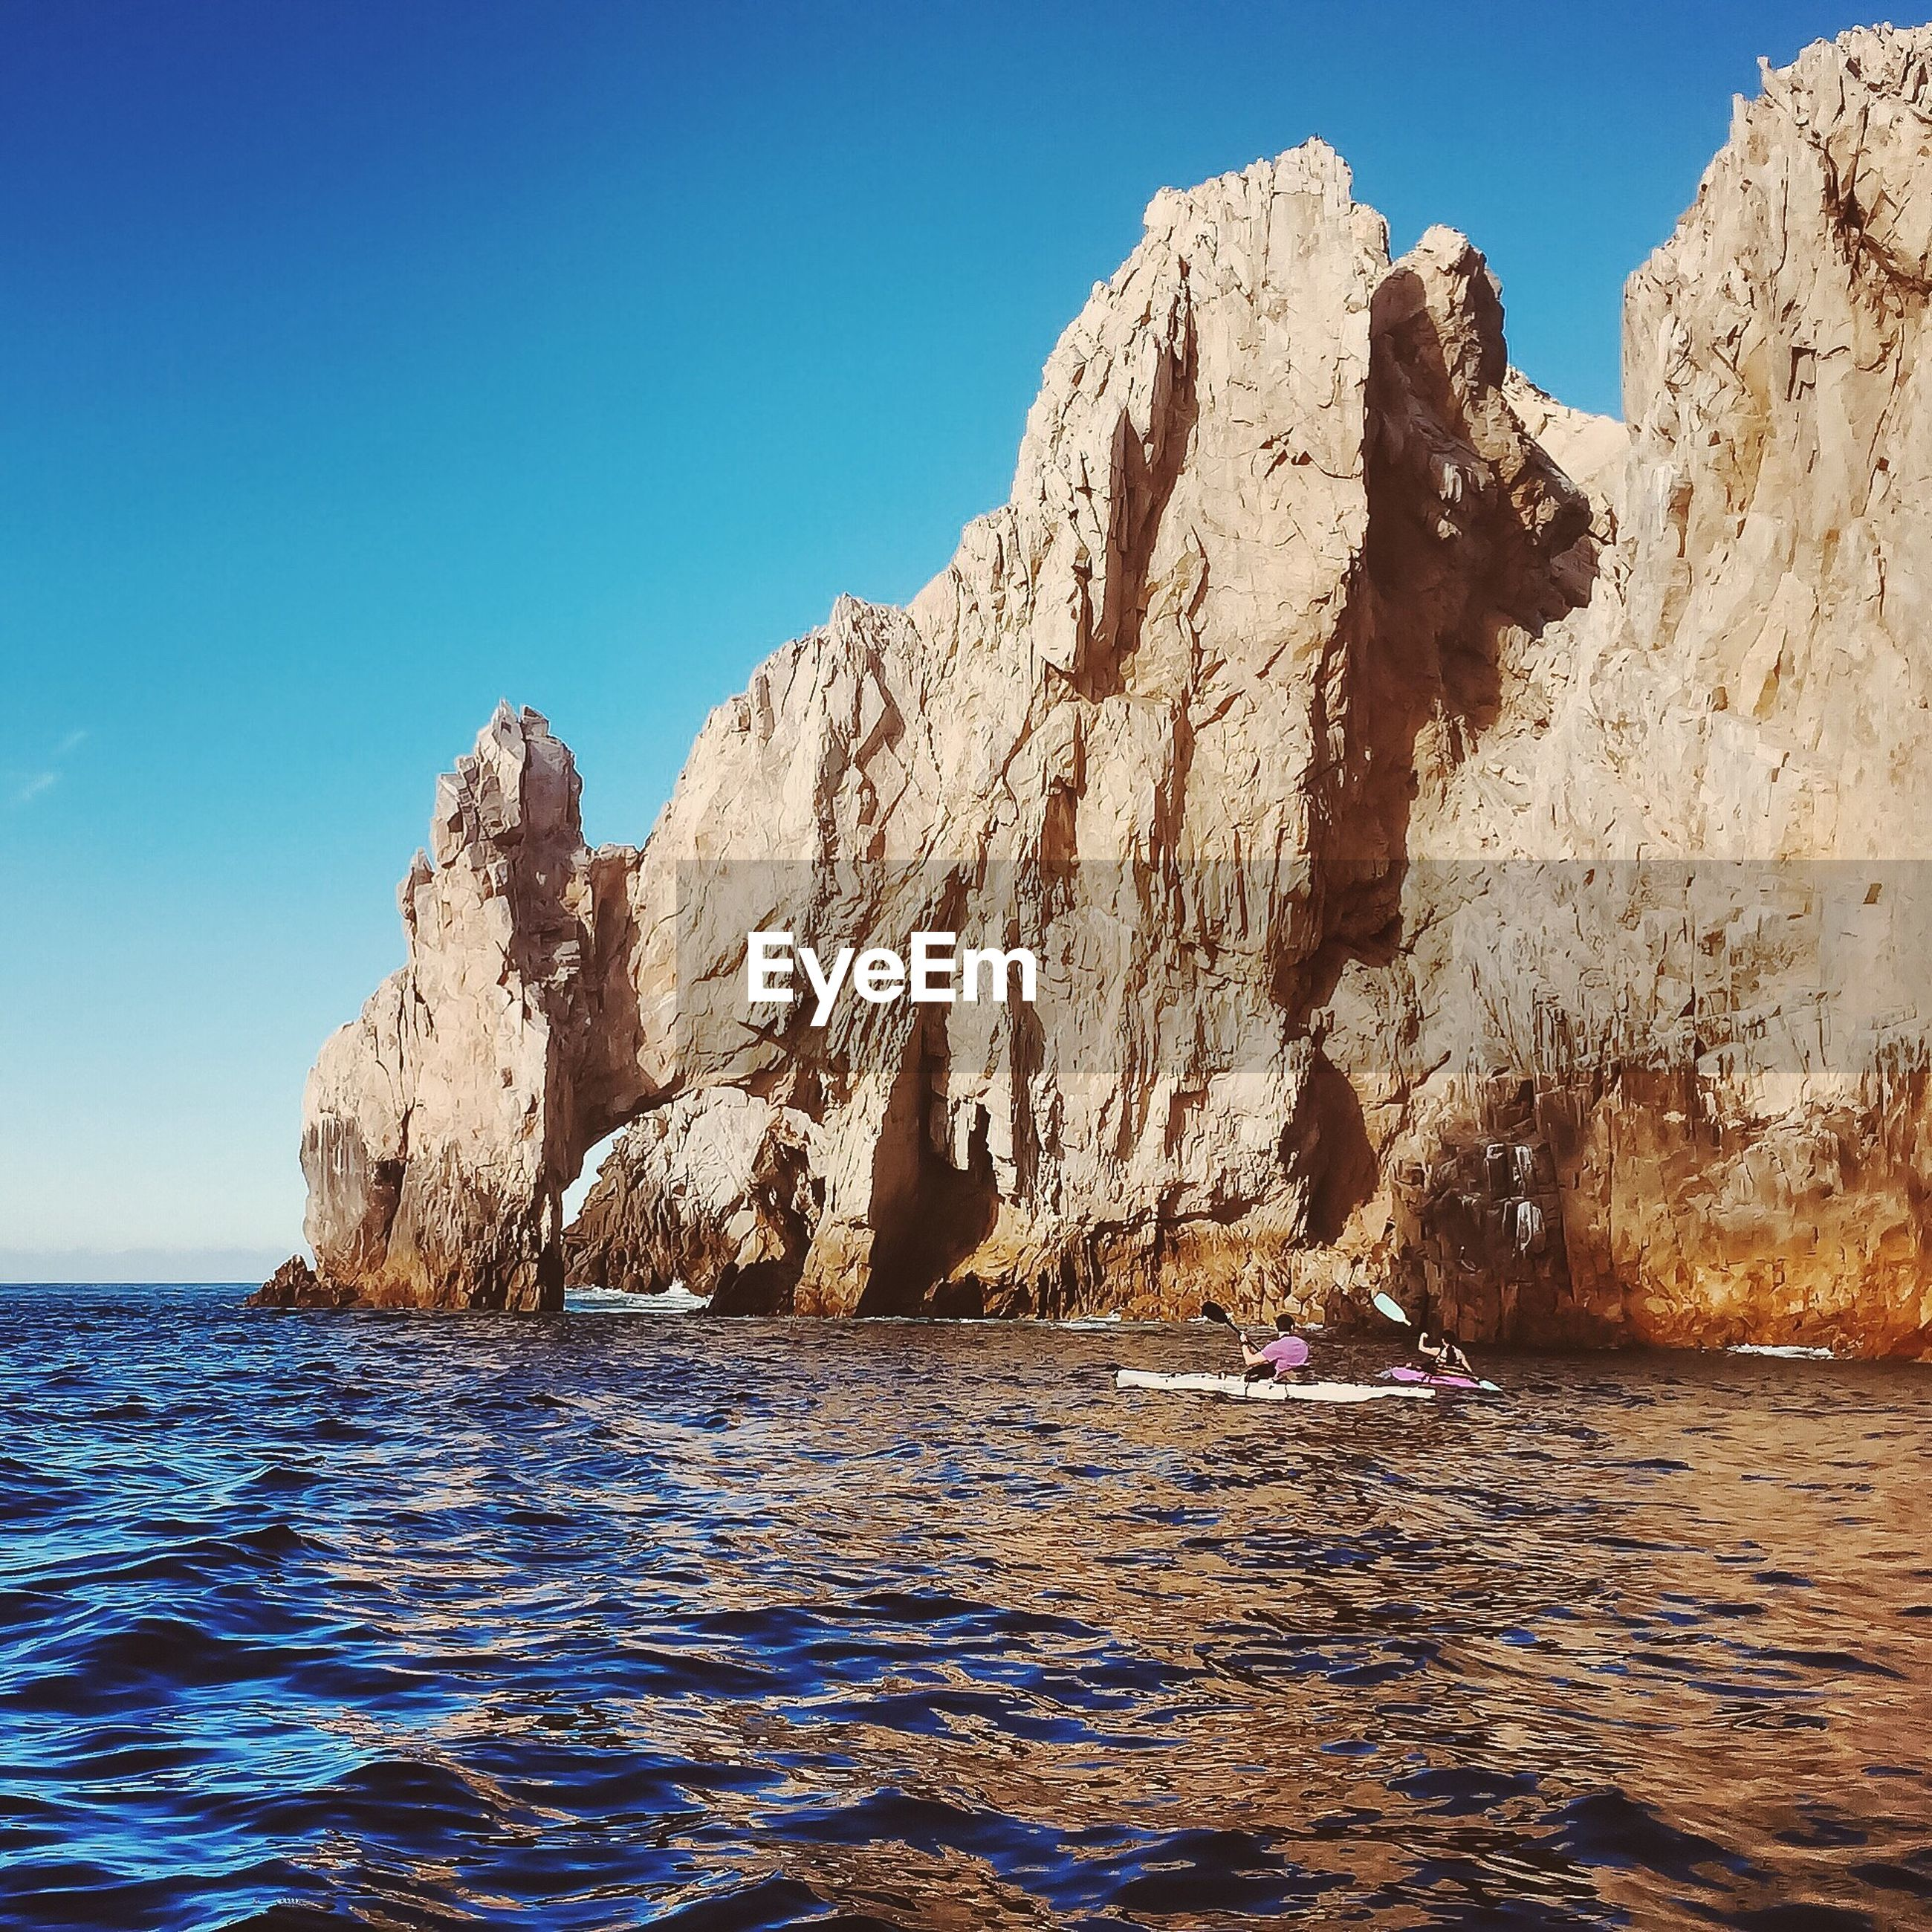 SCENIC VIEW OF ROCK FORMATION IN SEA AGAINST CLEAR BLUE SKY